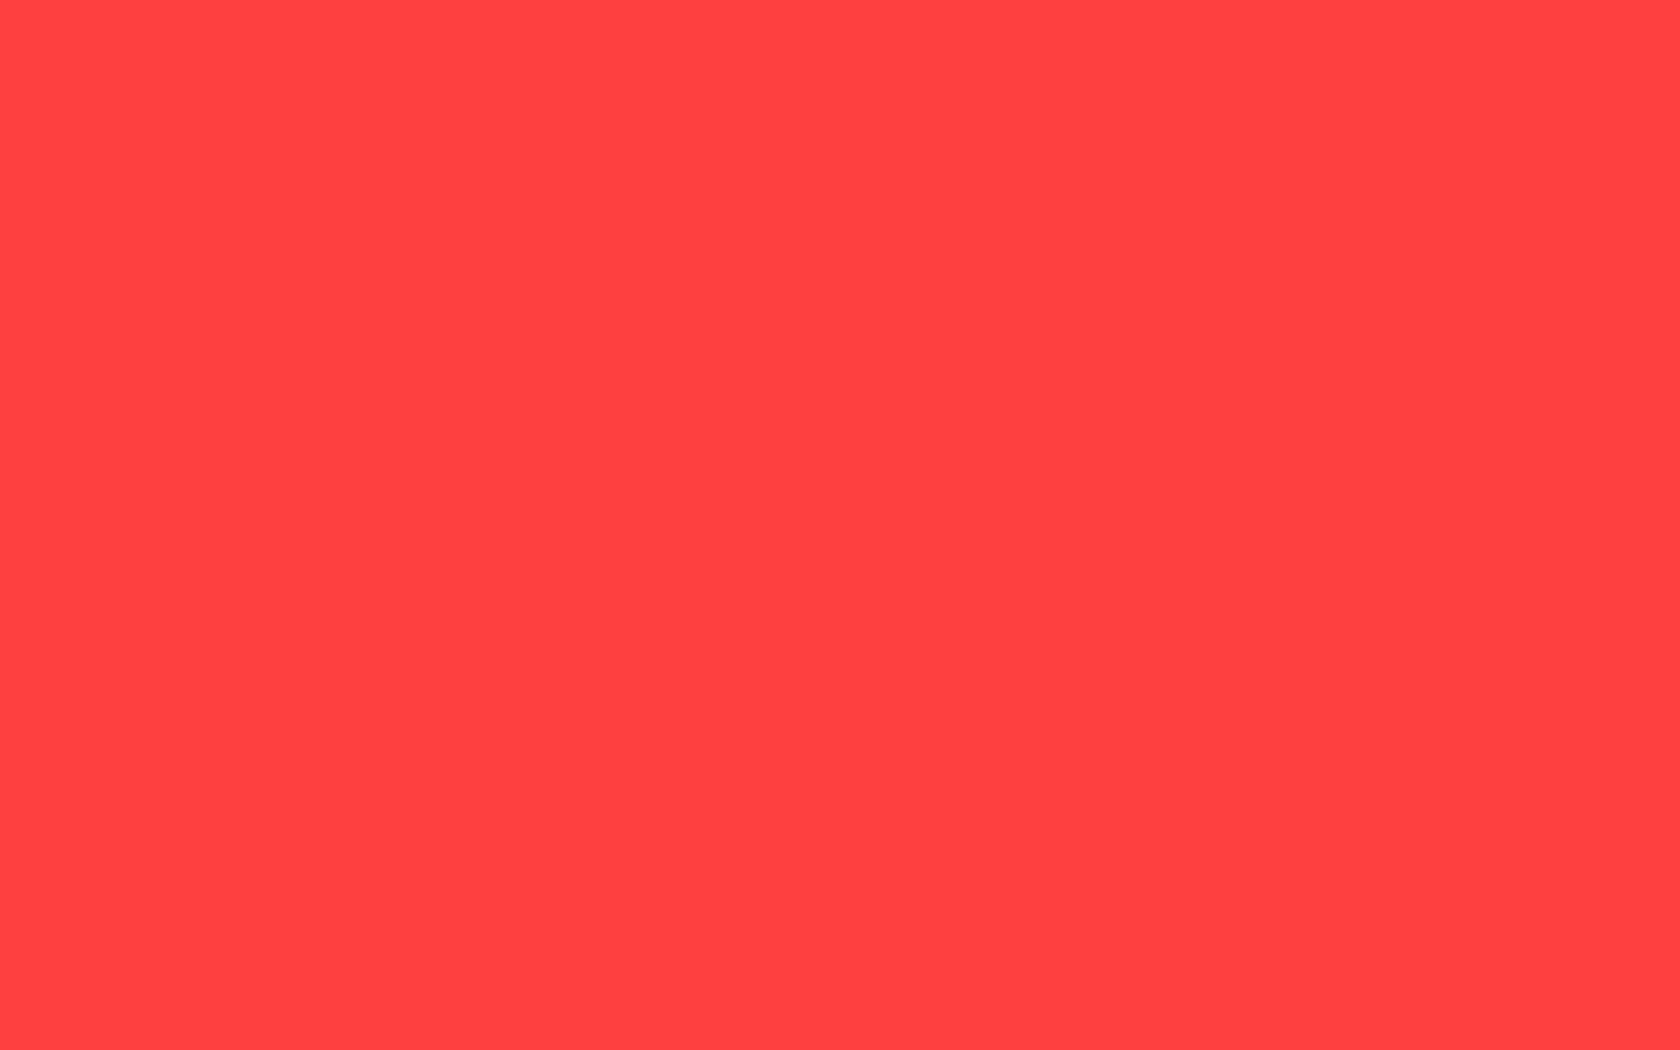 1680x1050 Coral Red Solid Color Background